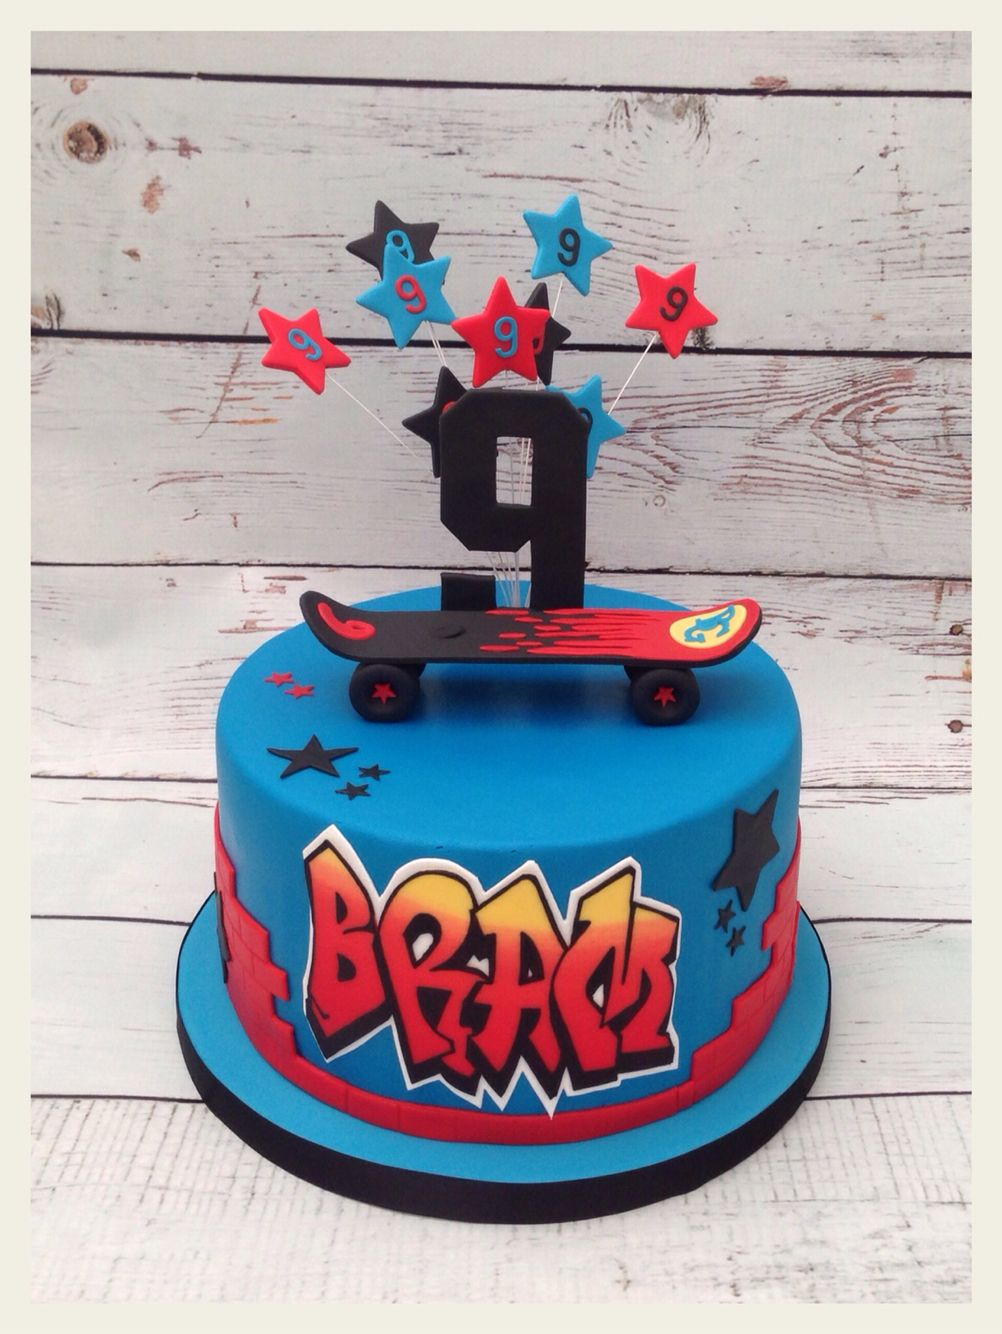 Skateboard Cake With Name In Graffiti Style Cakes By